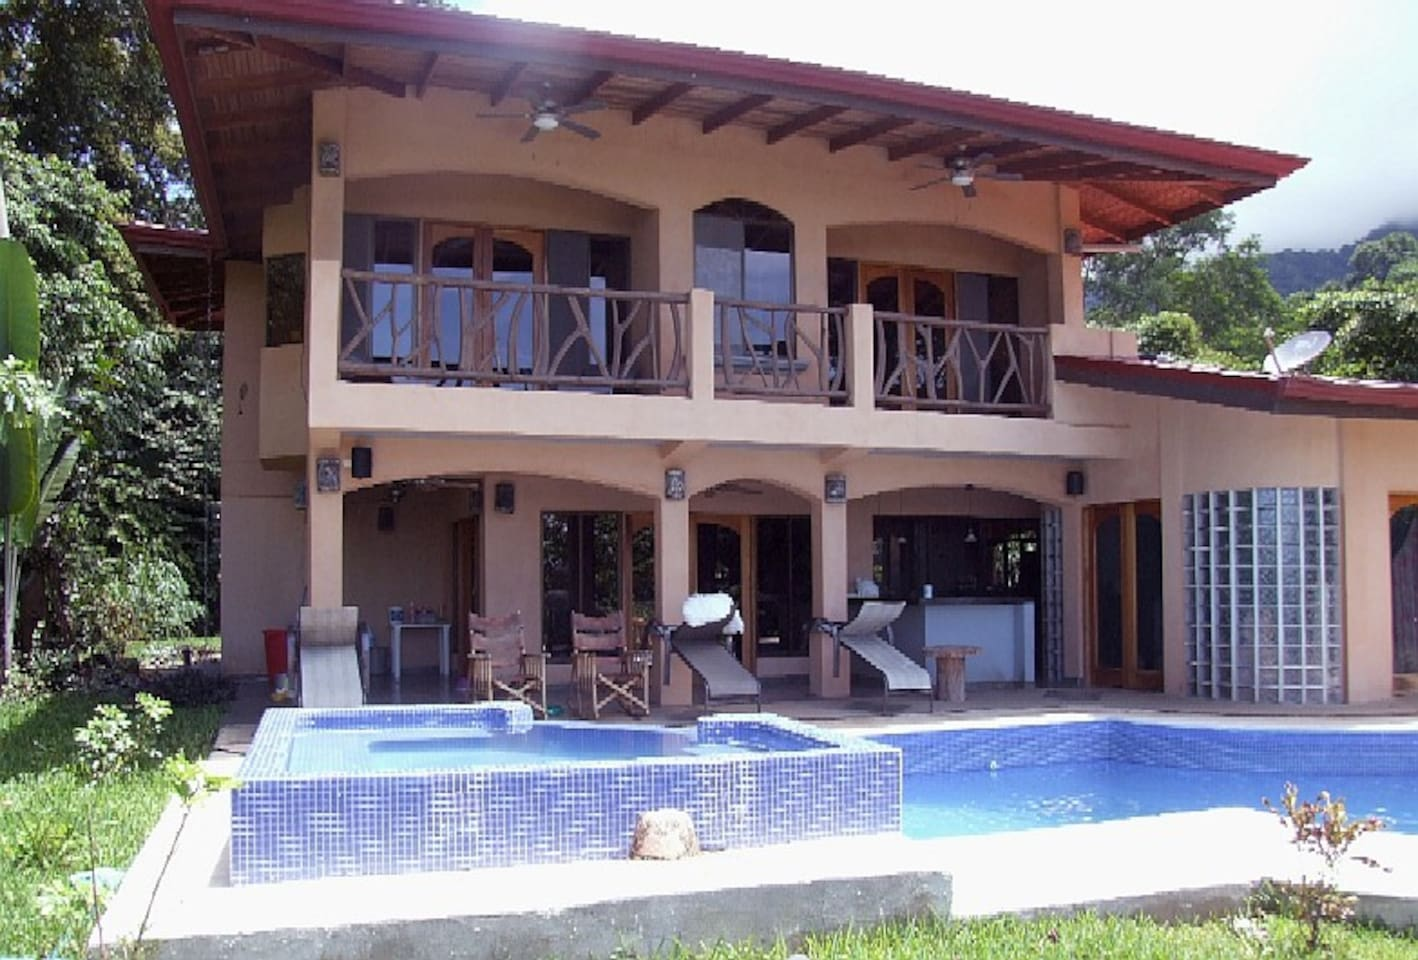 House and pool view